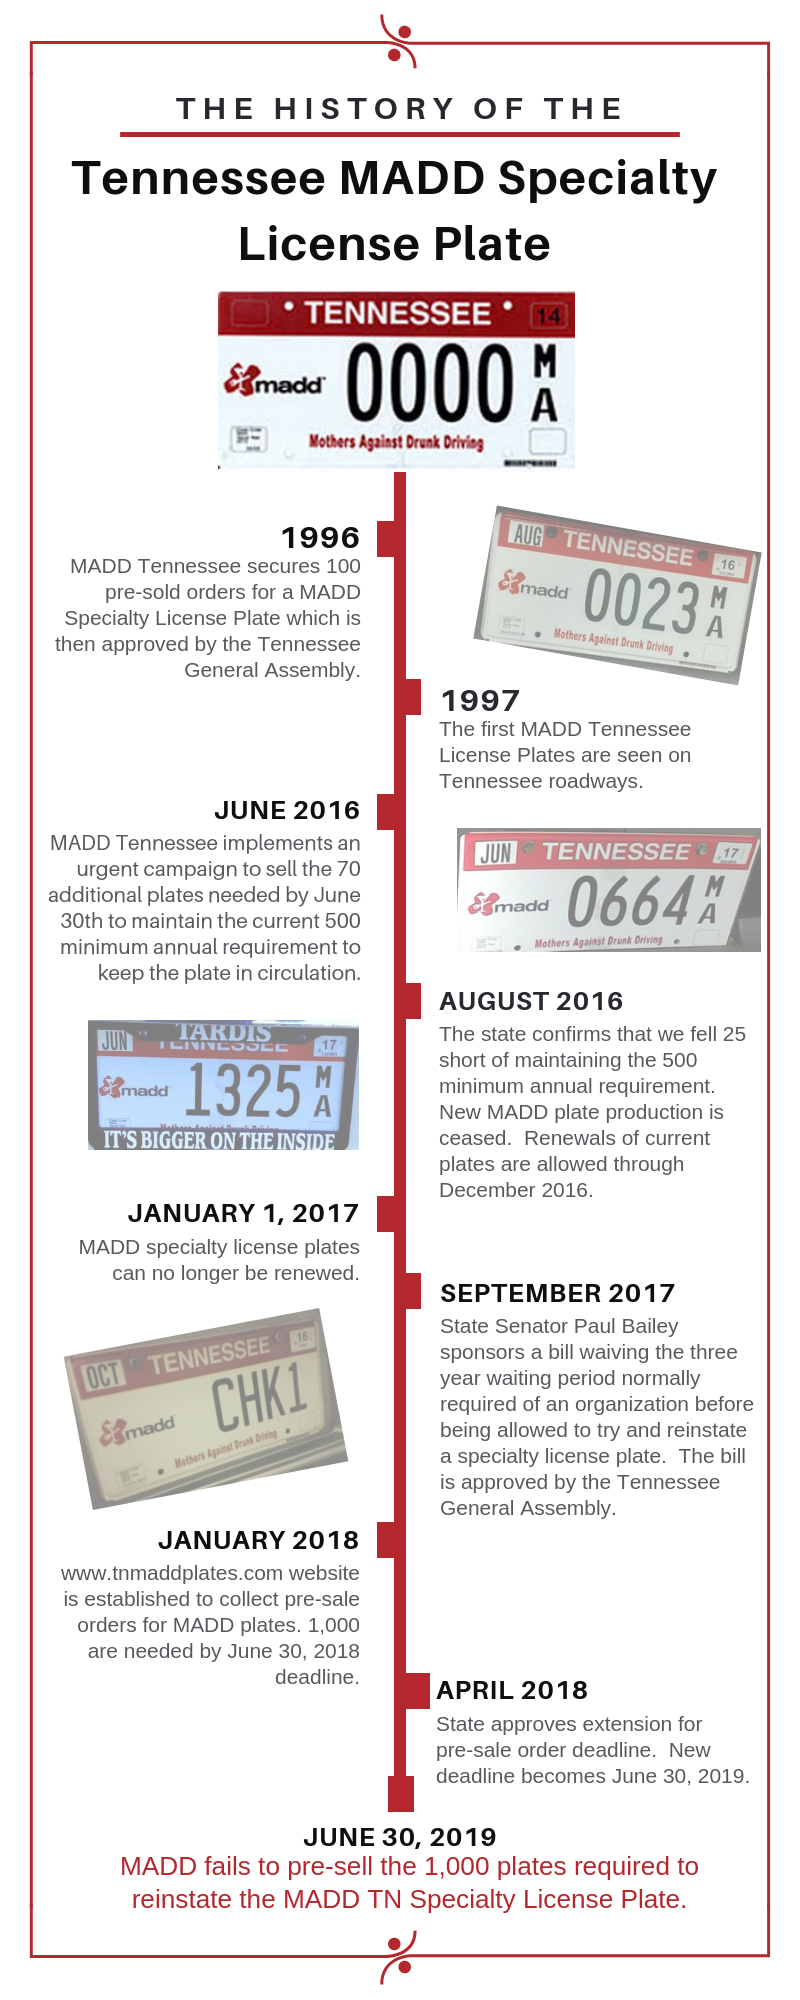 2019 MADD Specialty License Plate History Timeline Infographic